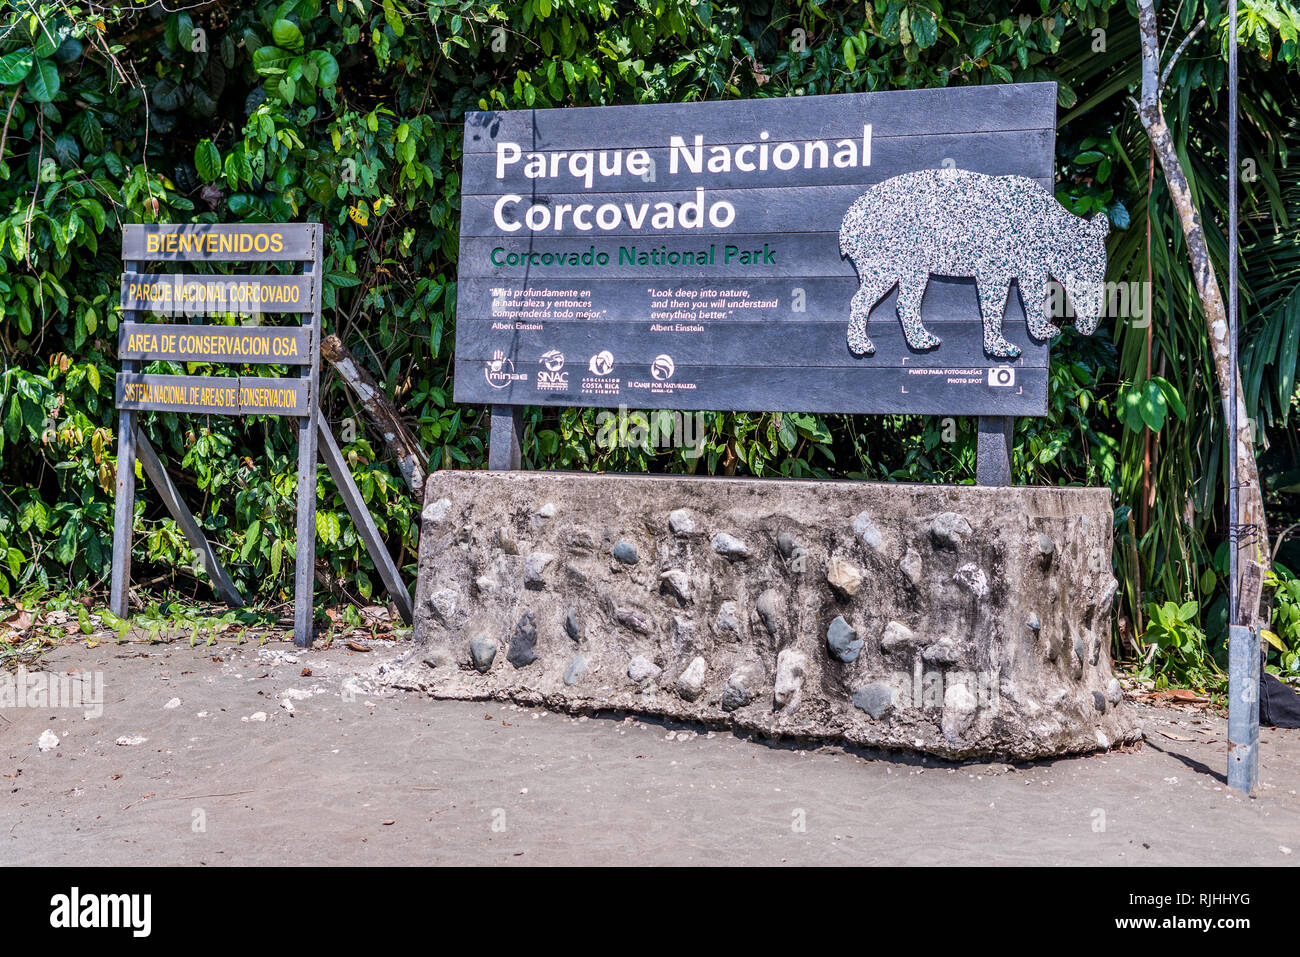 A photo of the sign at the entrance to the beautiful Corcovado National Park, one of the most biodiverse places on Earth. Costa Rica - Stock Image